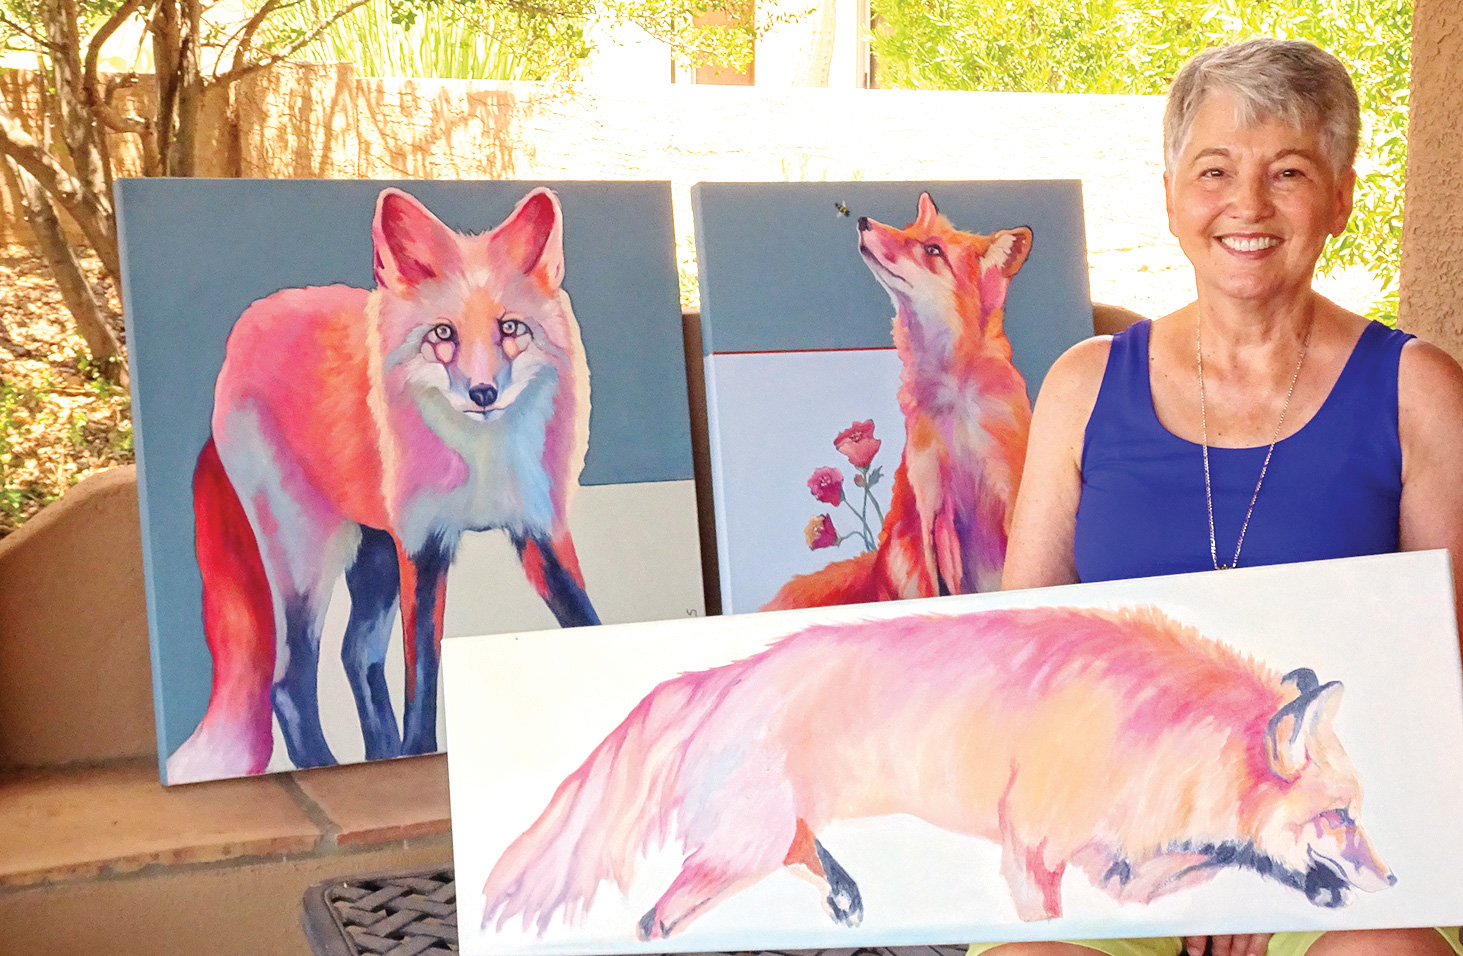 Rose Collins holds an in-progress work in her newest series. Behind her are two more paintings in this series, Foxy Lady (left) and Peaches meets Buzz. (Photo by LaVerne Kyriss)